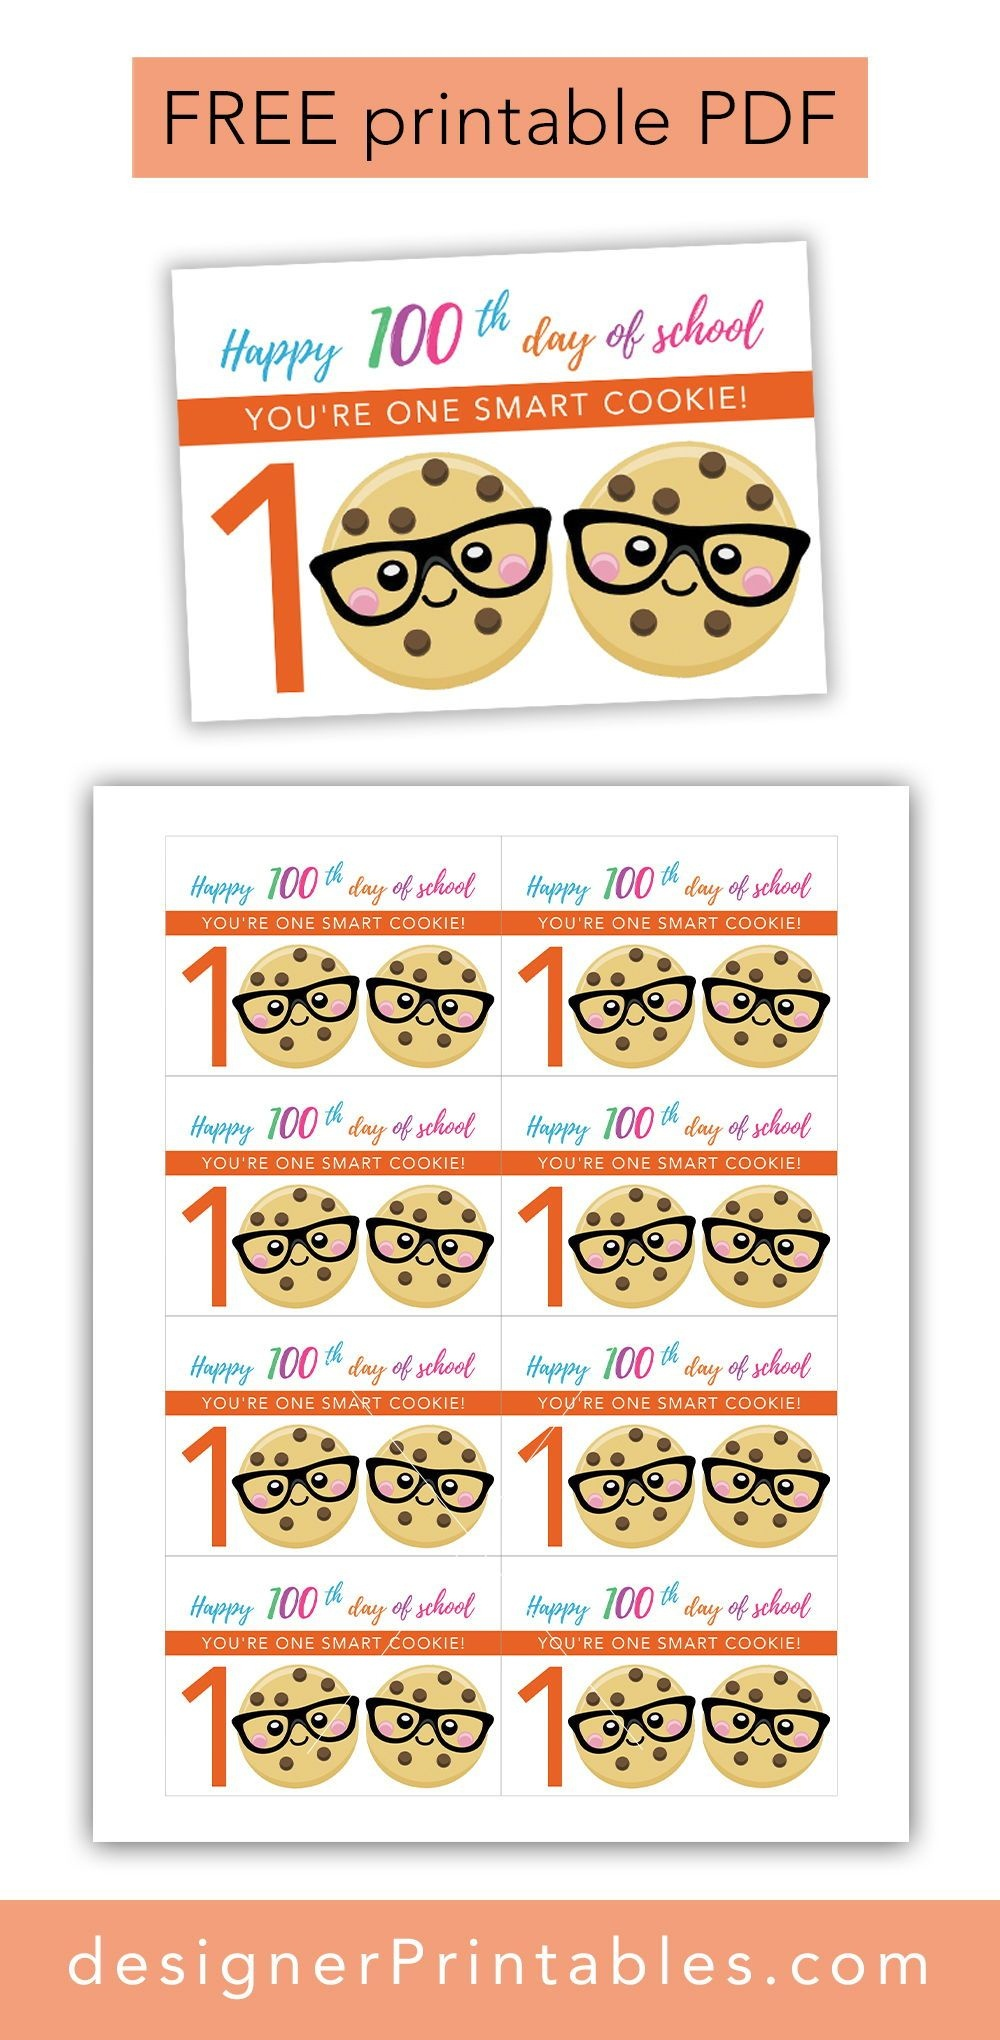 Free Printable: 100Th Day Of School - One Smart Cookie | Free - 100Th Day Of School Printable Glasses Free